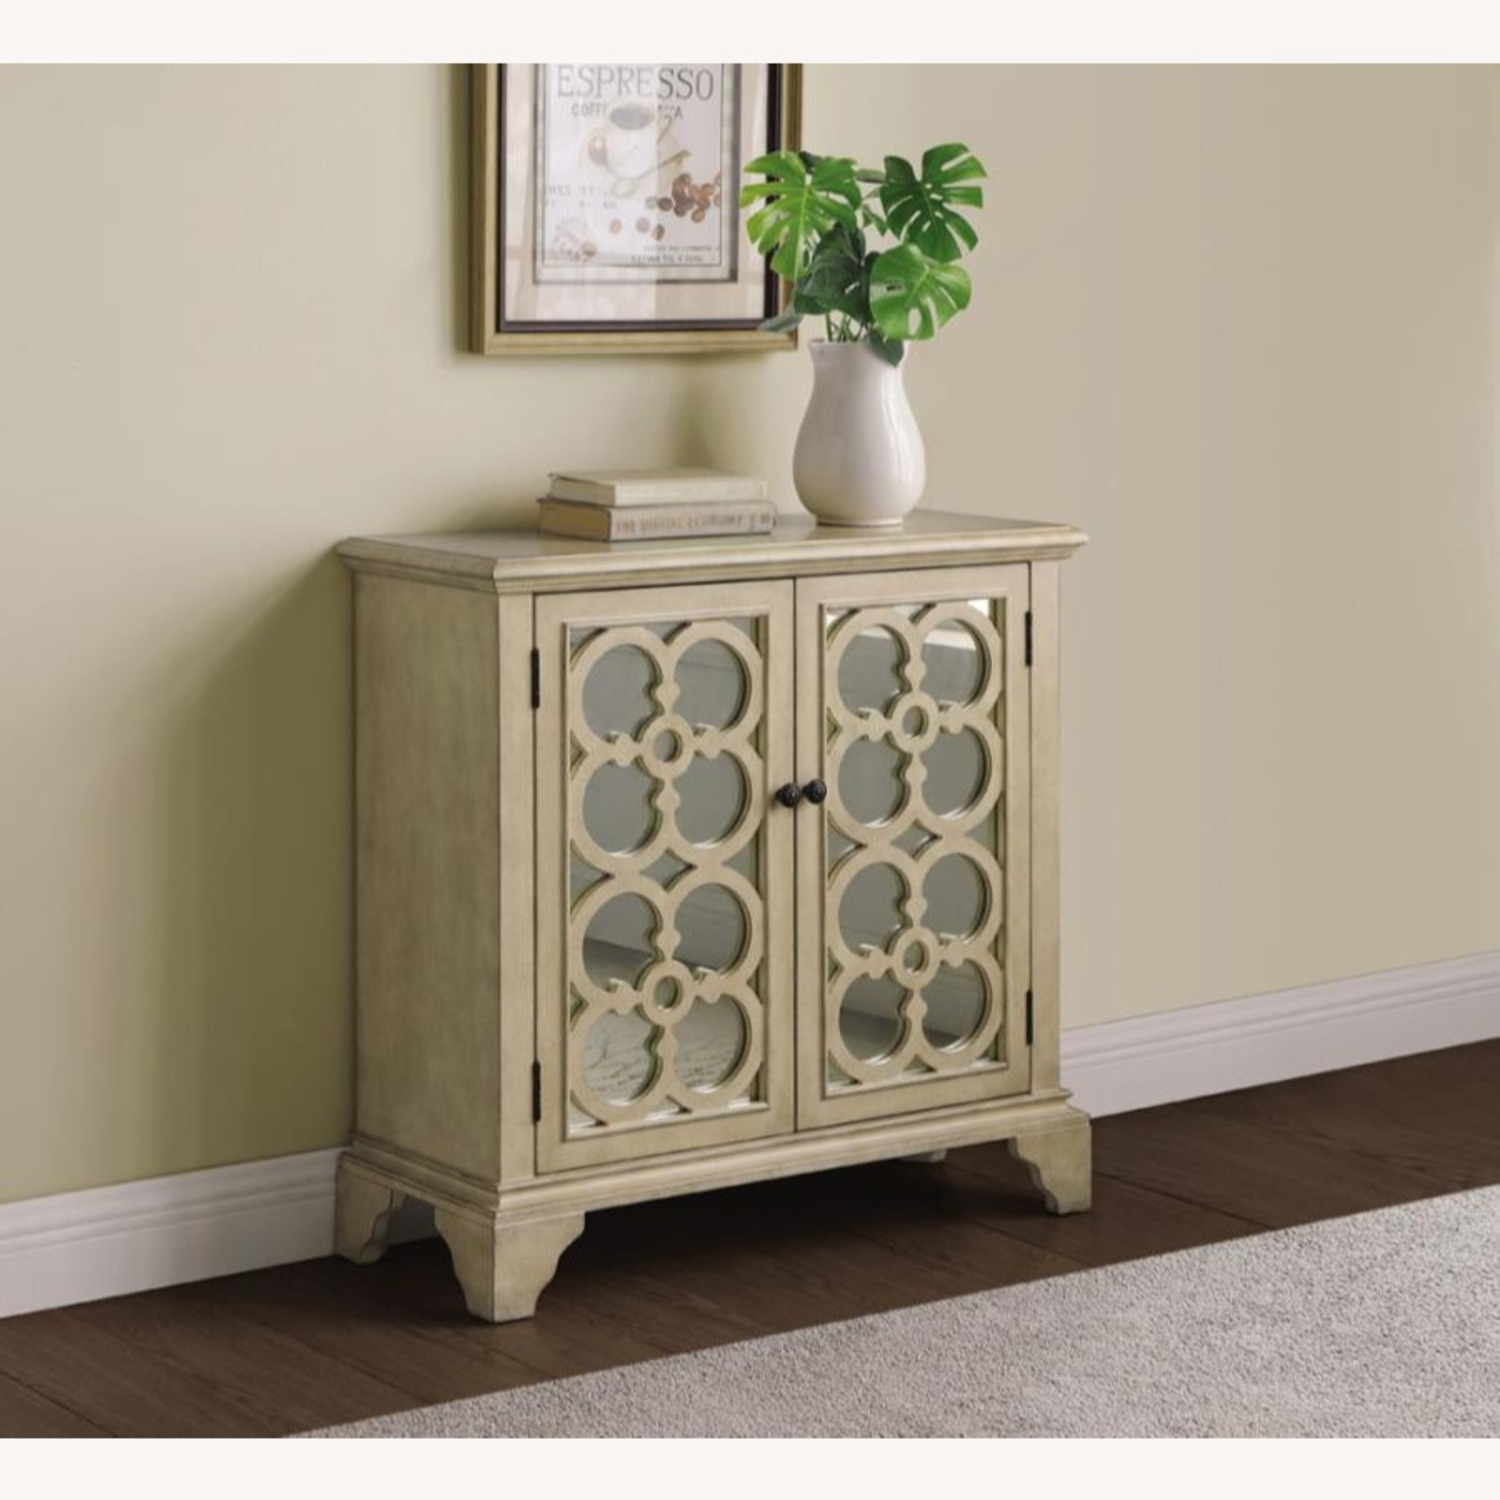 Accent Cabinet In Natural Hardwood Finish - image-1